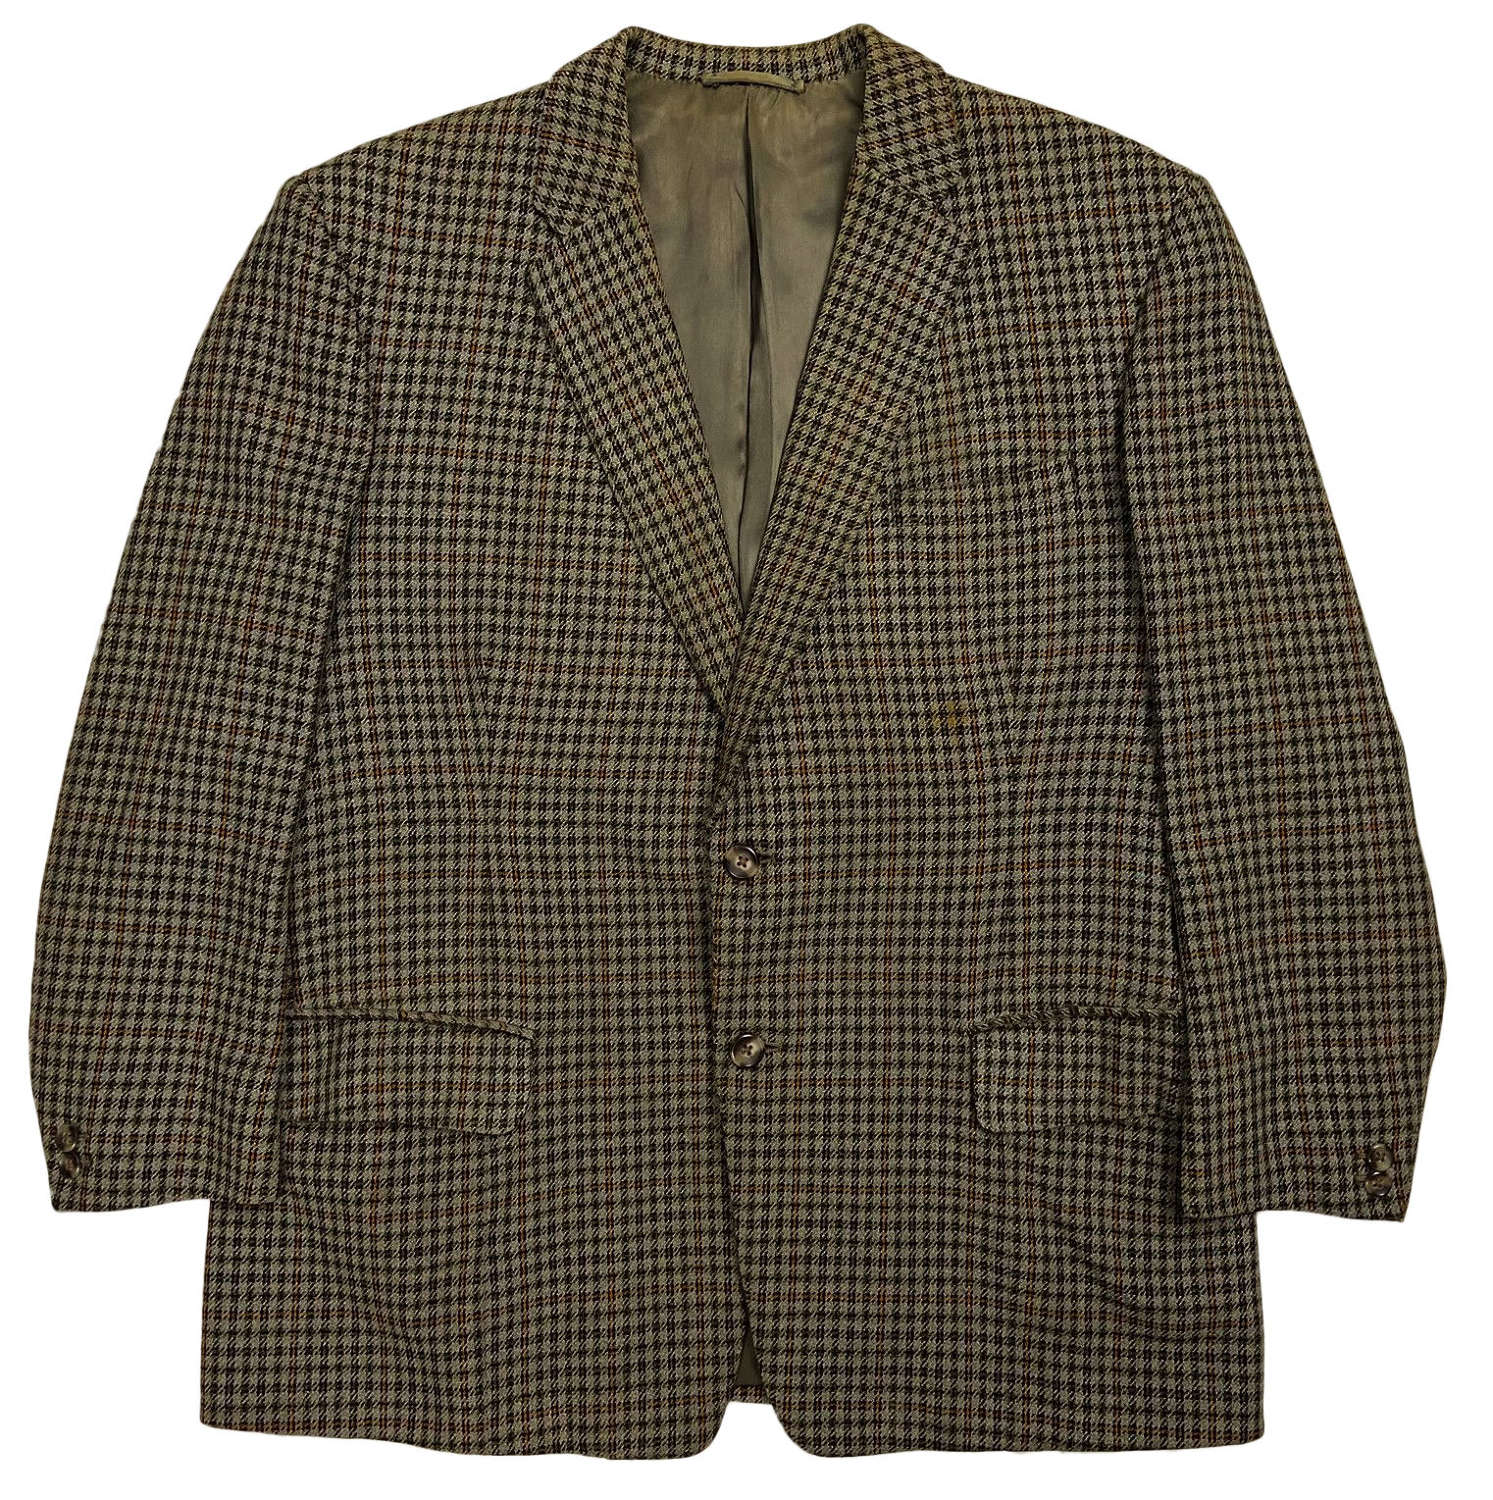 Original Early 1960s Men's Dogtooth Sports Jacket